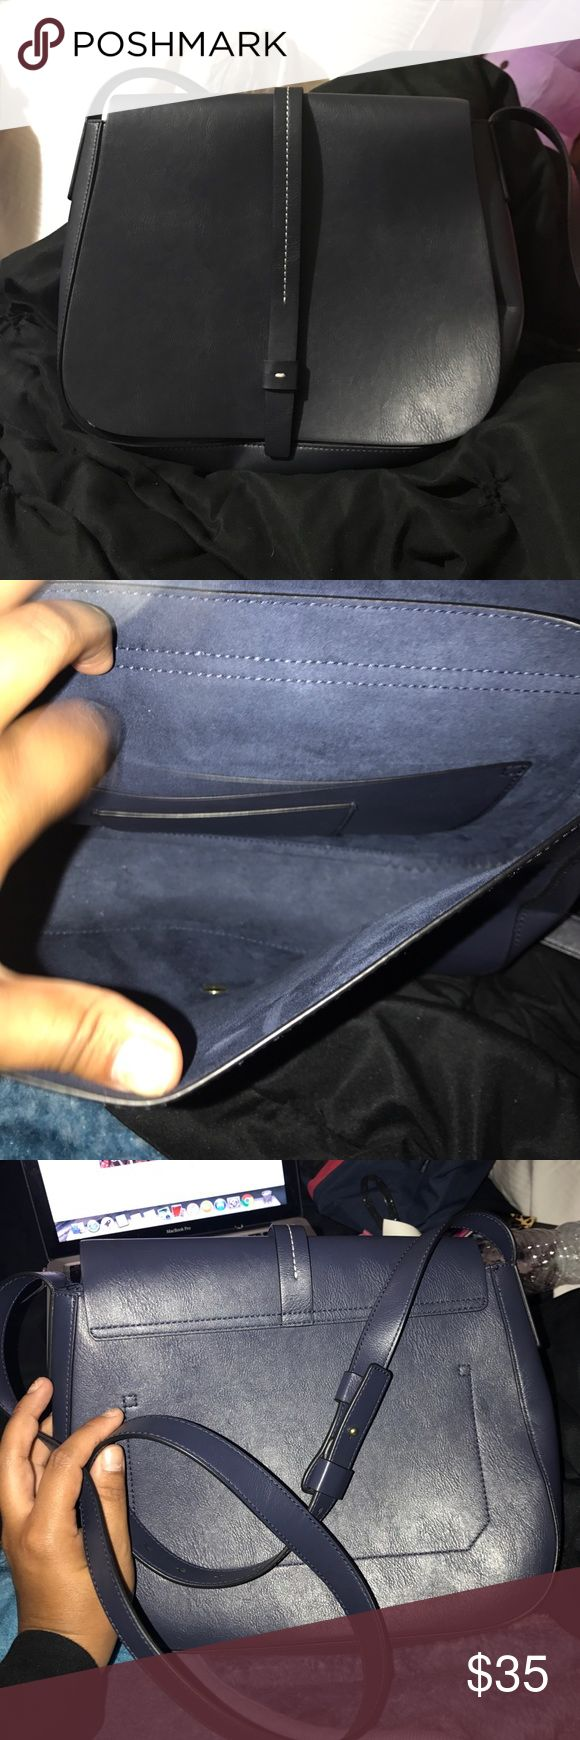 Gap shoulder bag Very nice Gap shoulder bag in Navy color. Big size. Can hold an ipad mini, make up bag, water bottle, keys and phone. In perfect condition! No flaws! GAP Bags Shoulder Bags